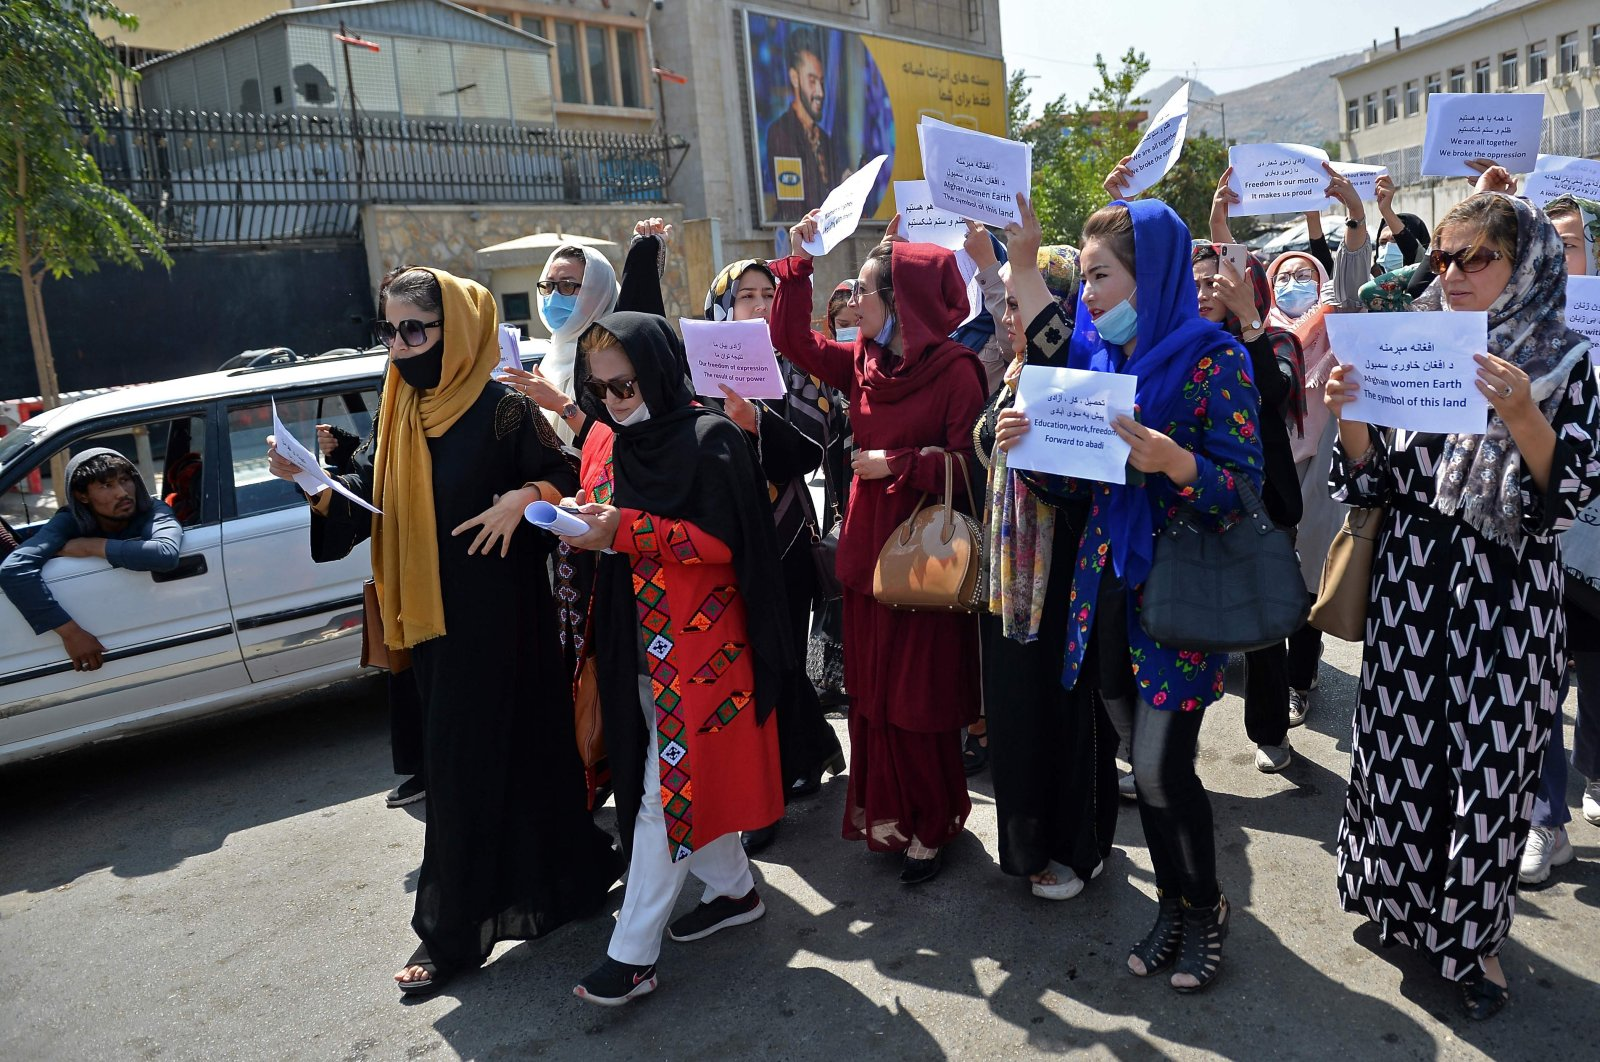 Afghan women take part in a protest march for their rights under the Taliban rule in the downtown area of Kabul, Afghanistan, Sept. 3, 2021. (AFP Photo)